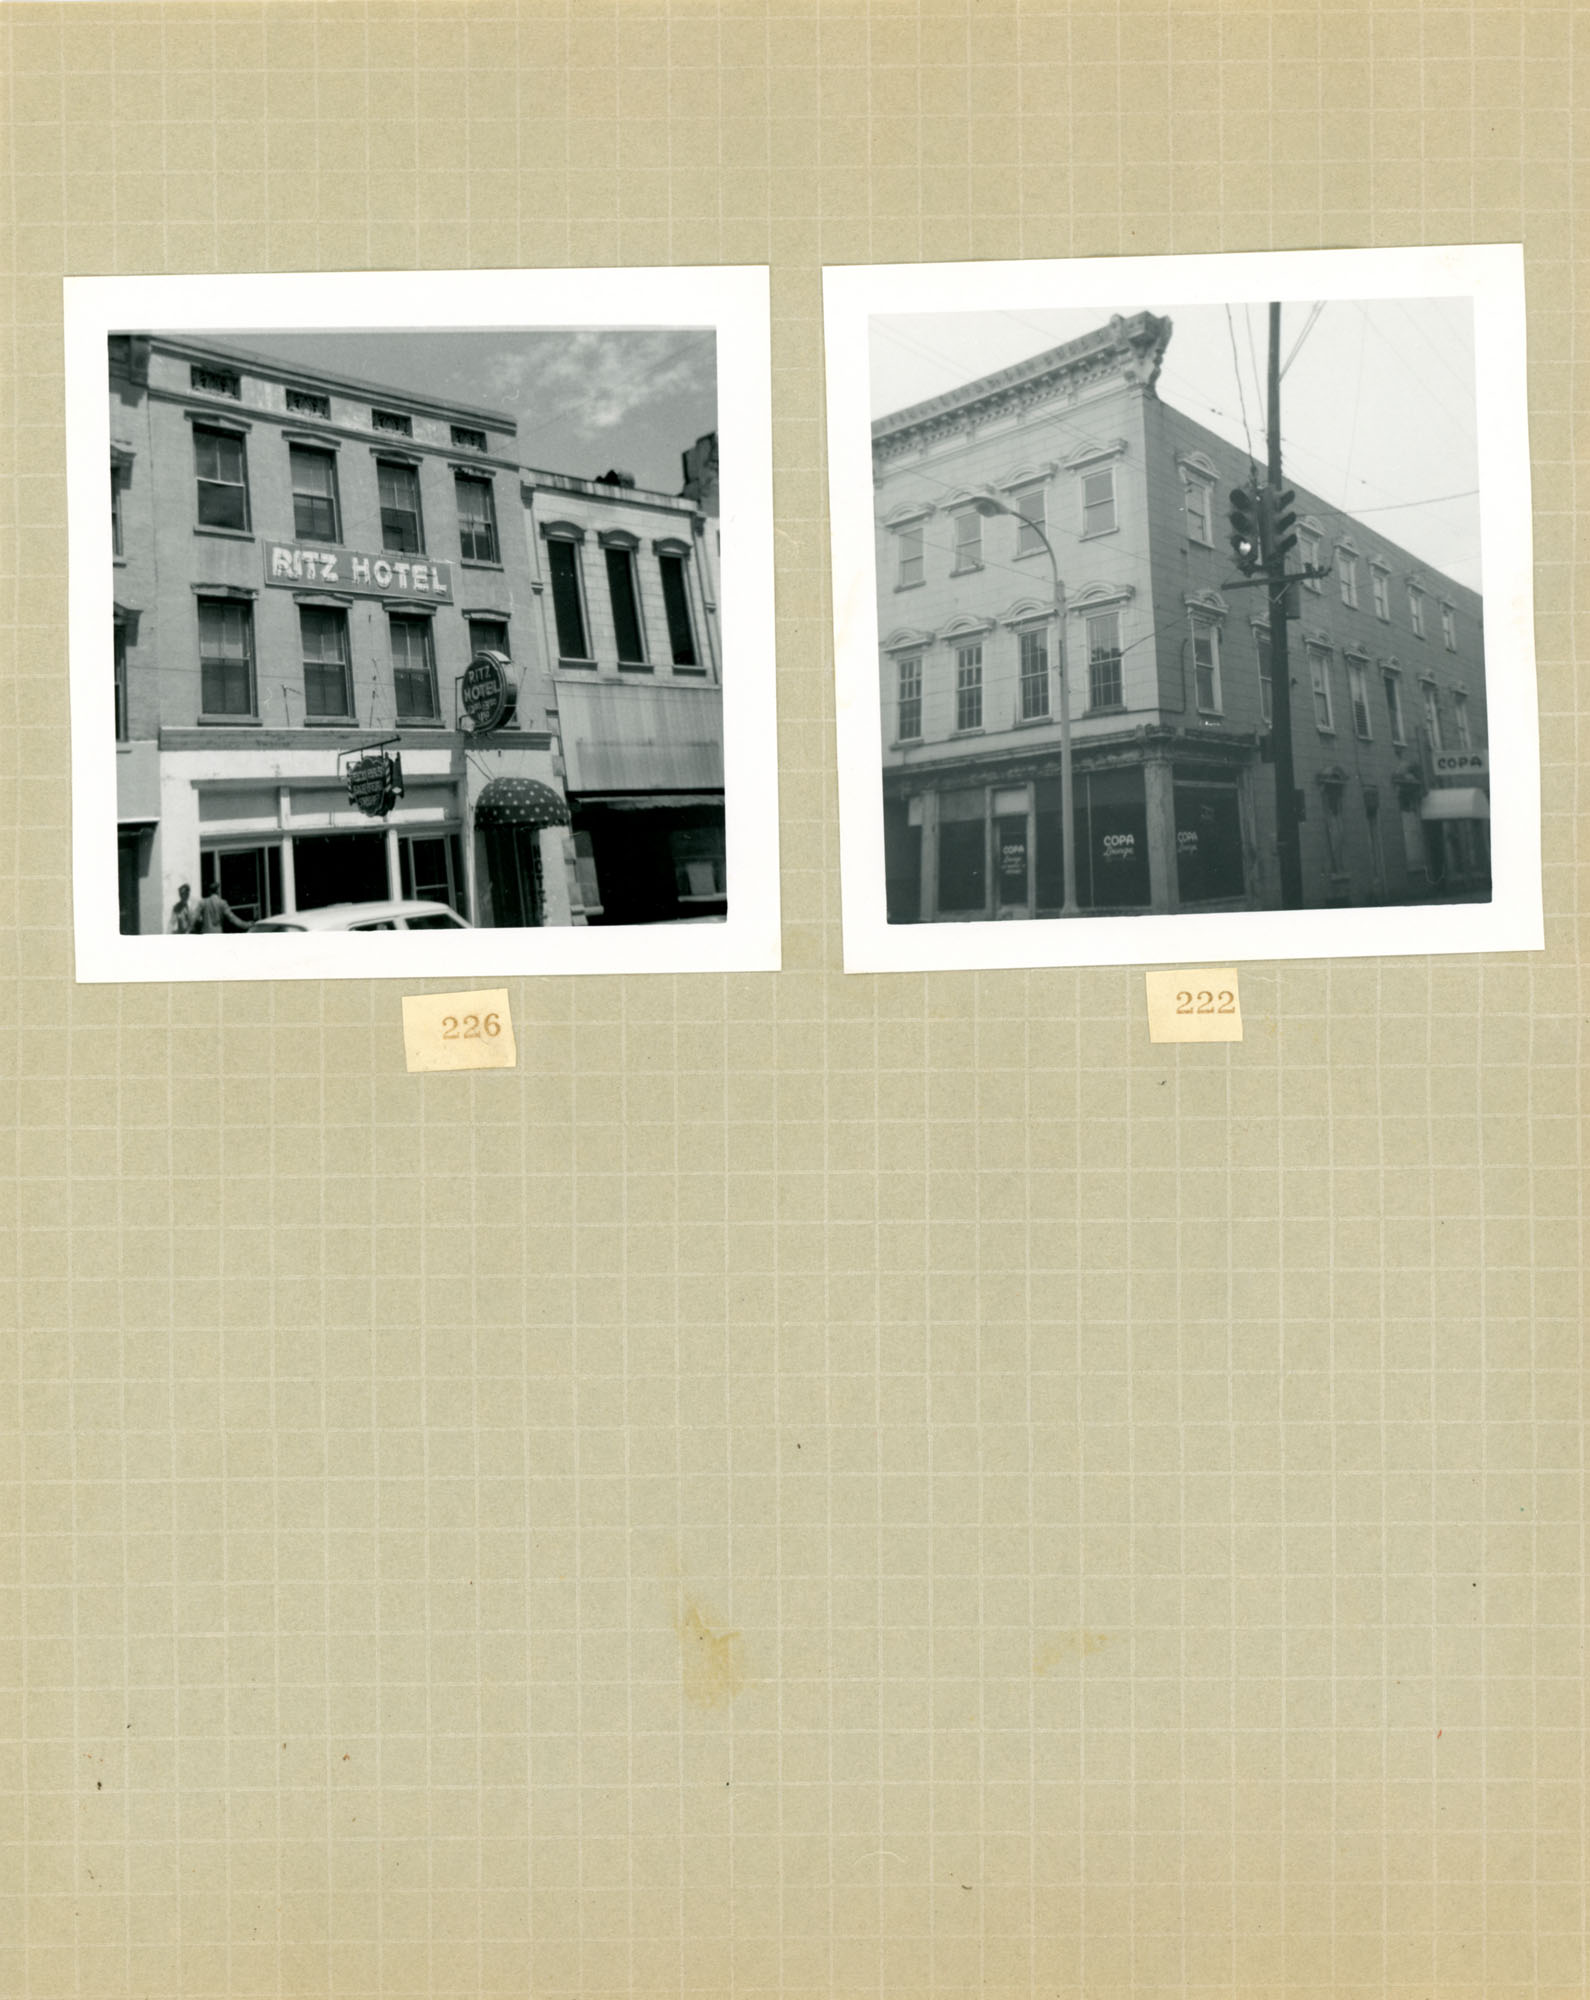 King Street Survey Photo Album, Page 6 (front): 222-226 King Street